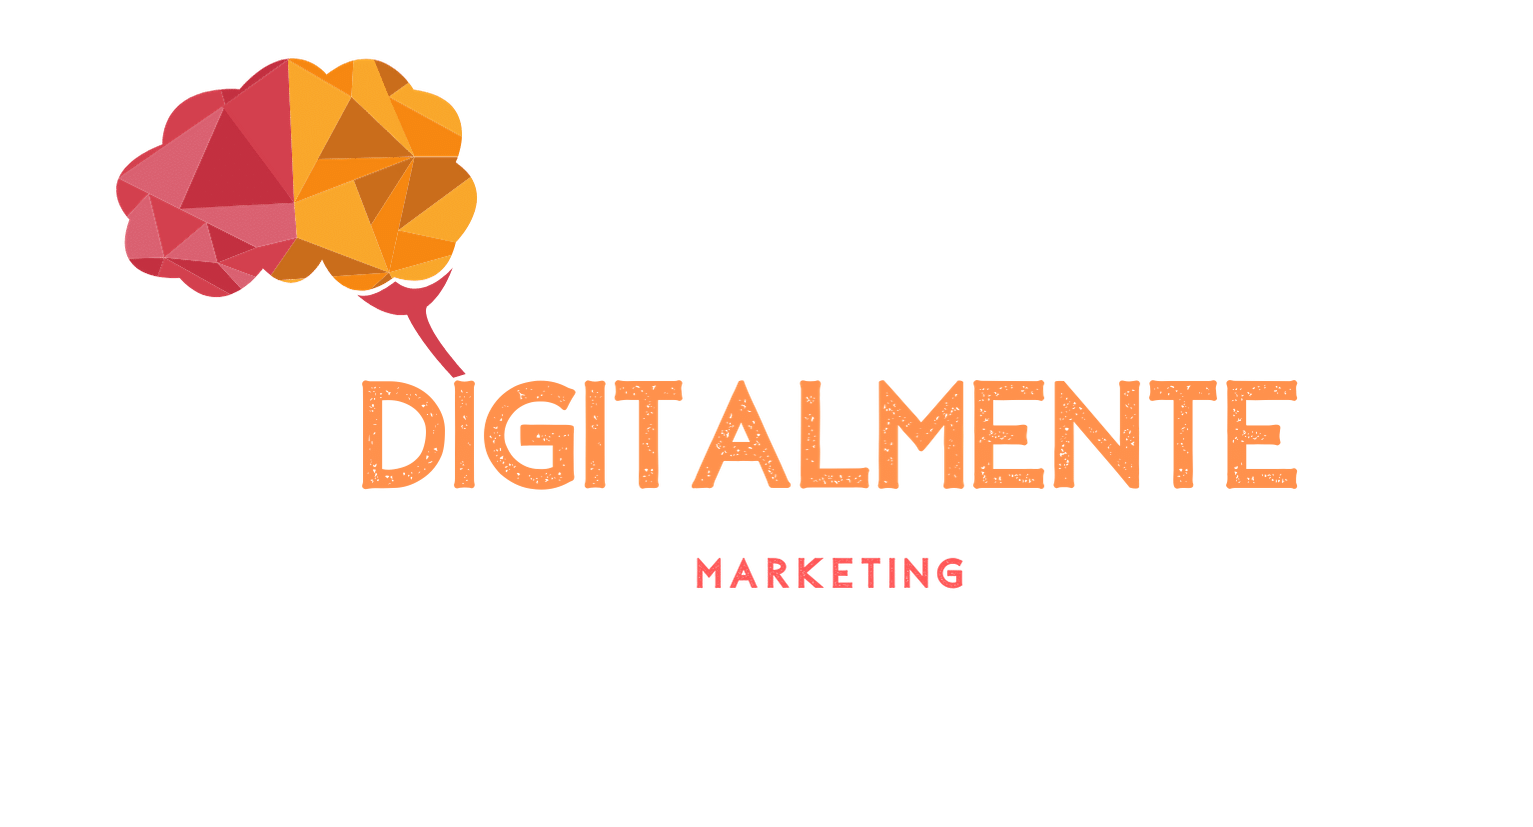 Digitalmente Marketing